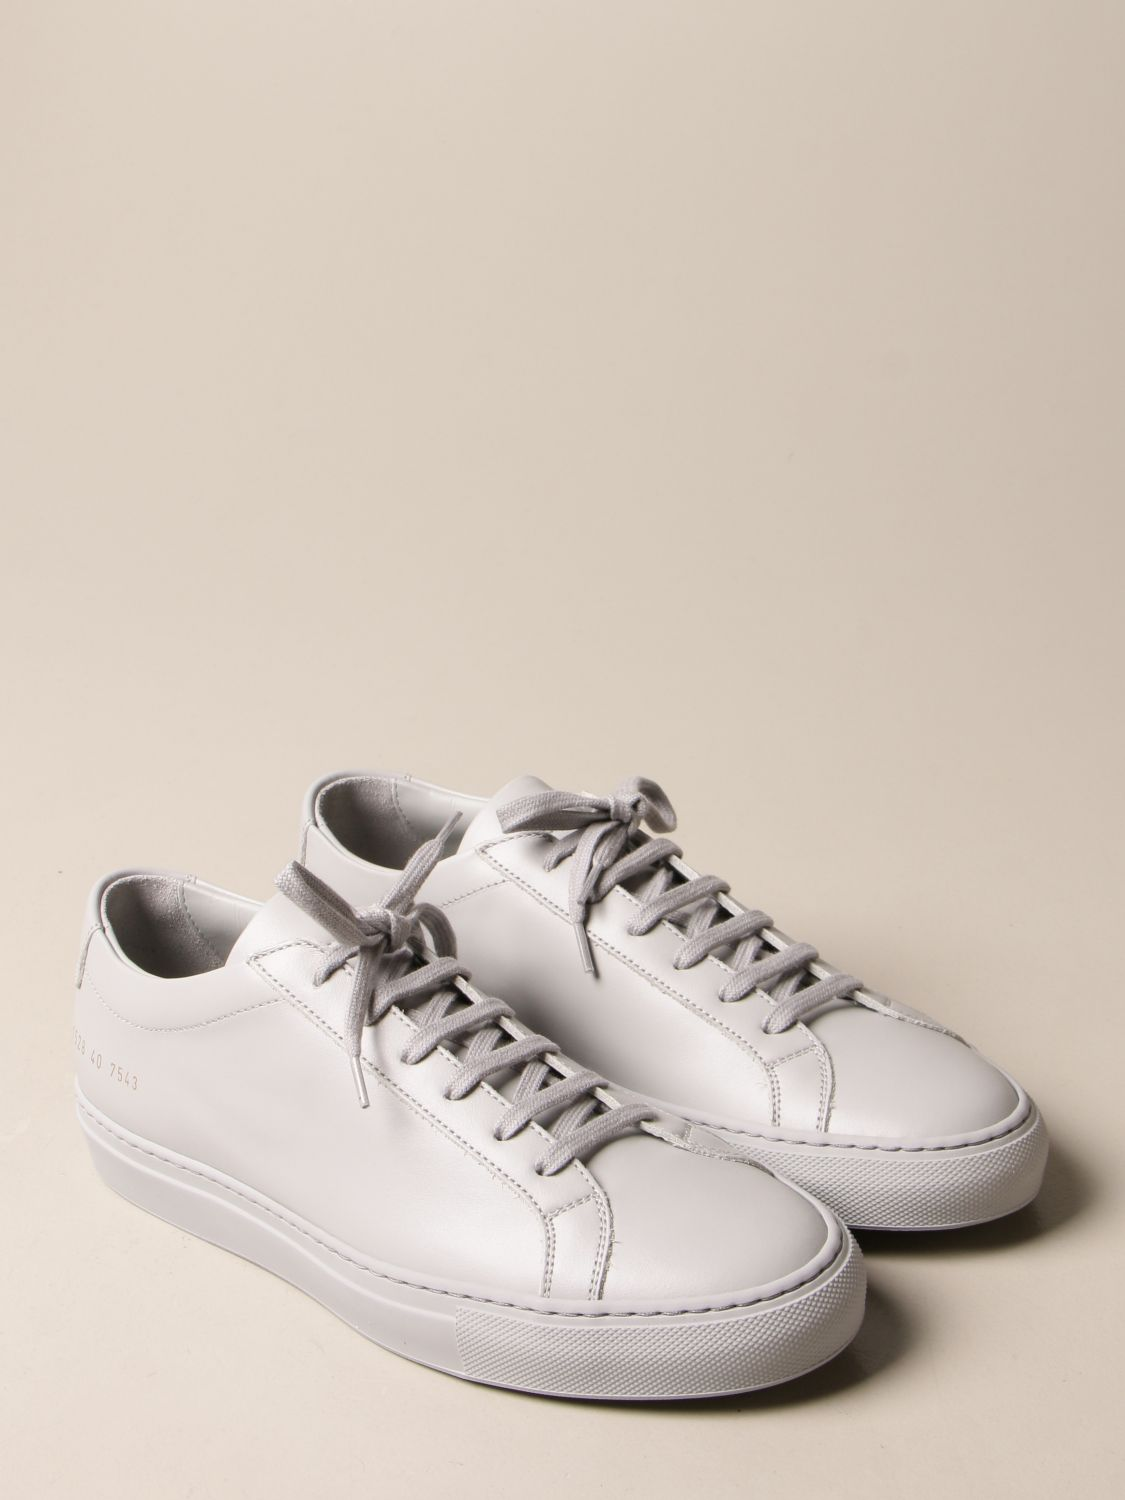 Sneakers Common Projects: Sneakers herren Common Projects grau 2